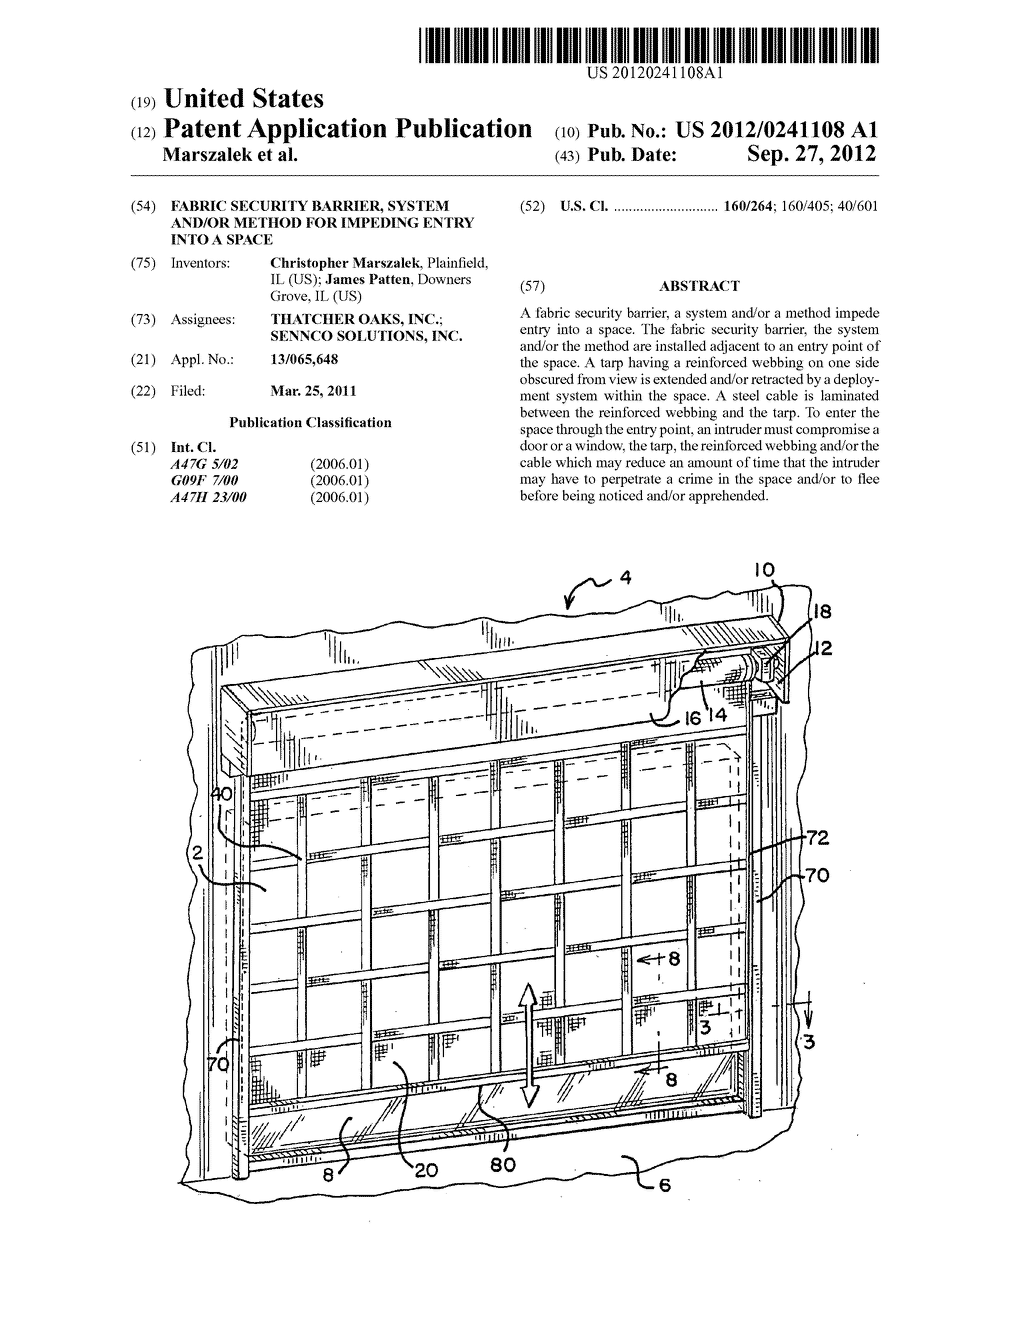 Fabric security barrier, system and/or method for impeding entry into a     space - diagram, schematic, and image 01